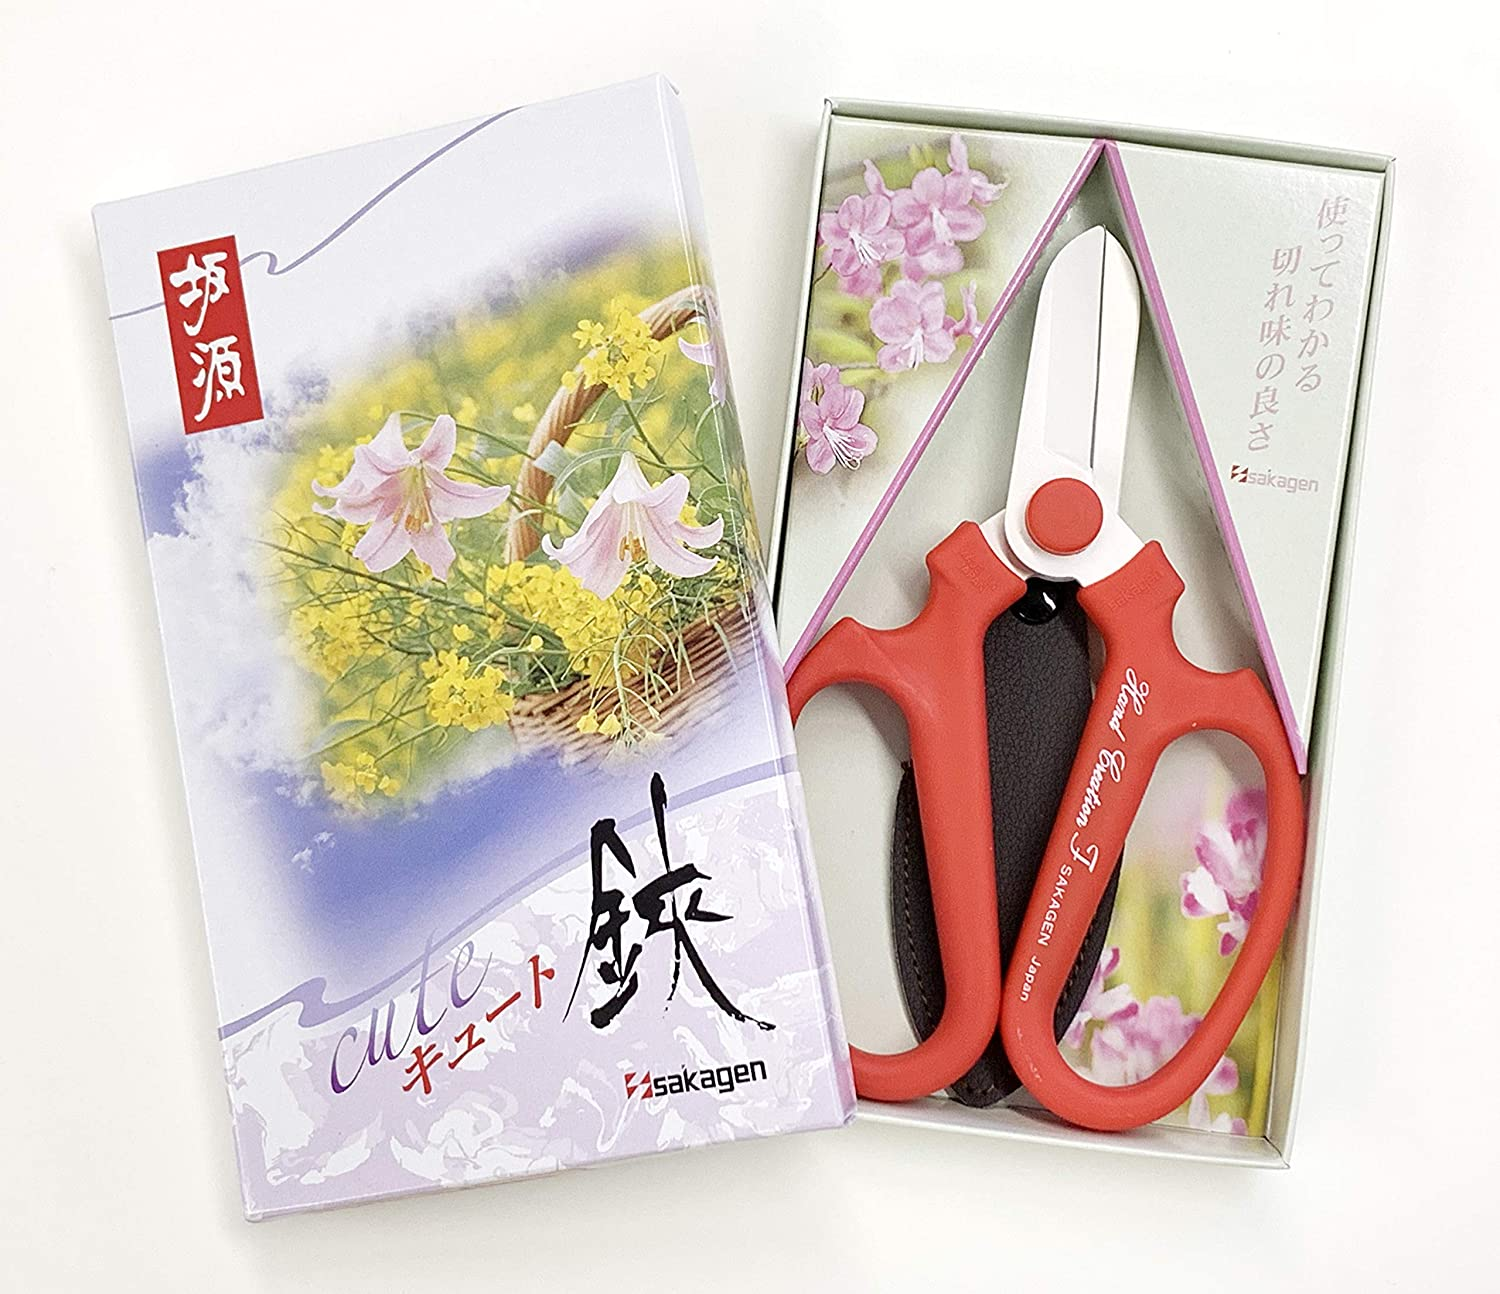 UK stock Japanese Sakagen Florist Flower Scissors Limited Edition Black Blade